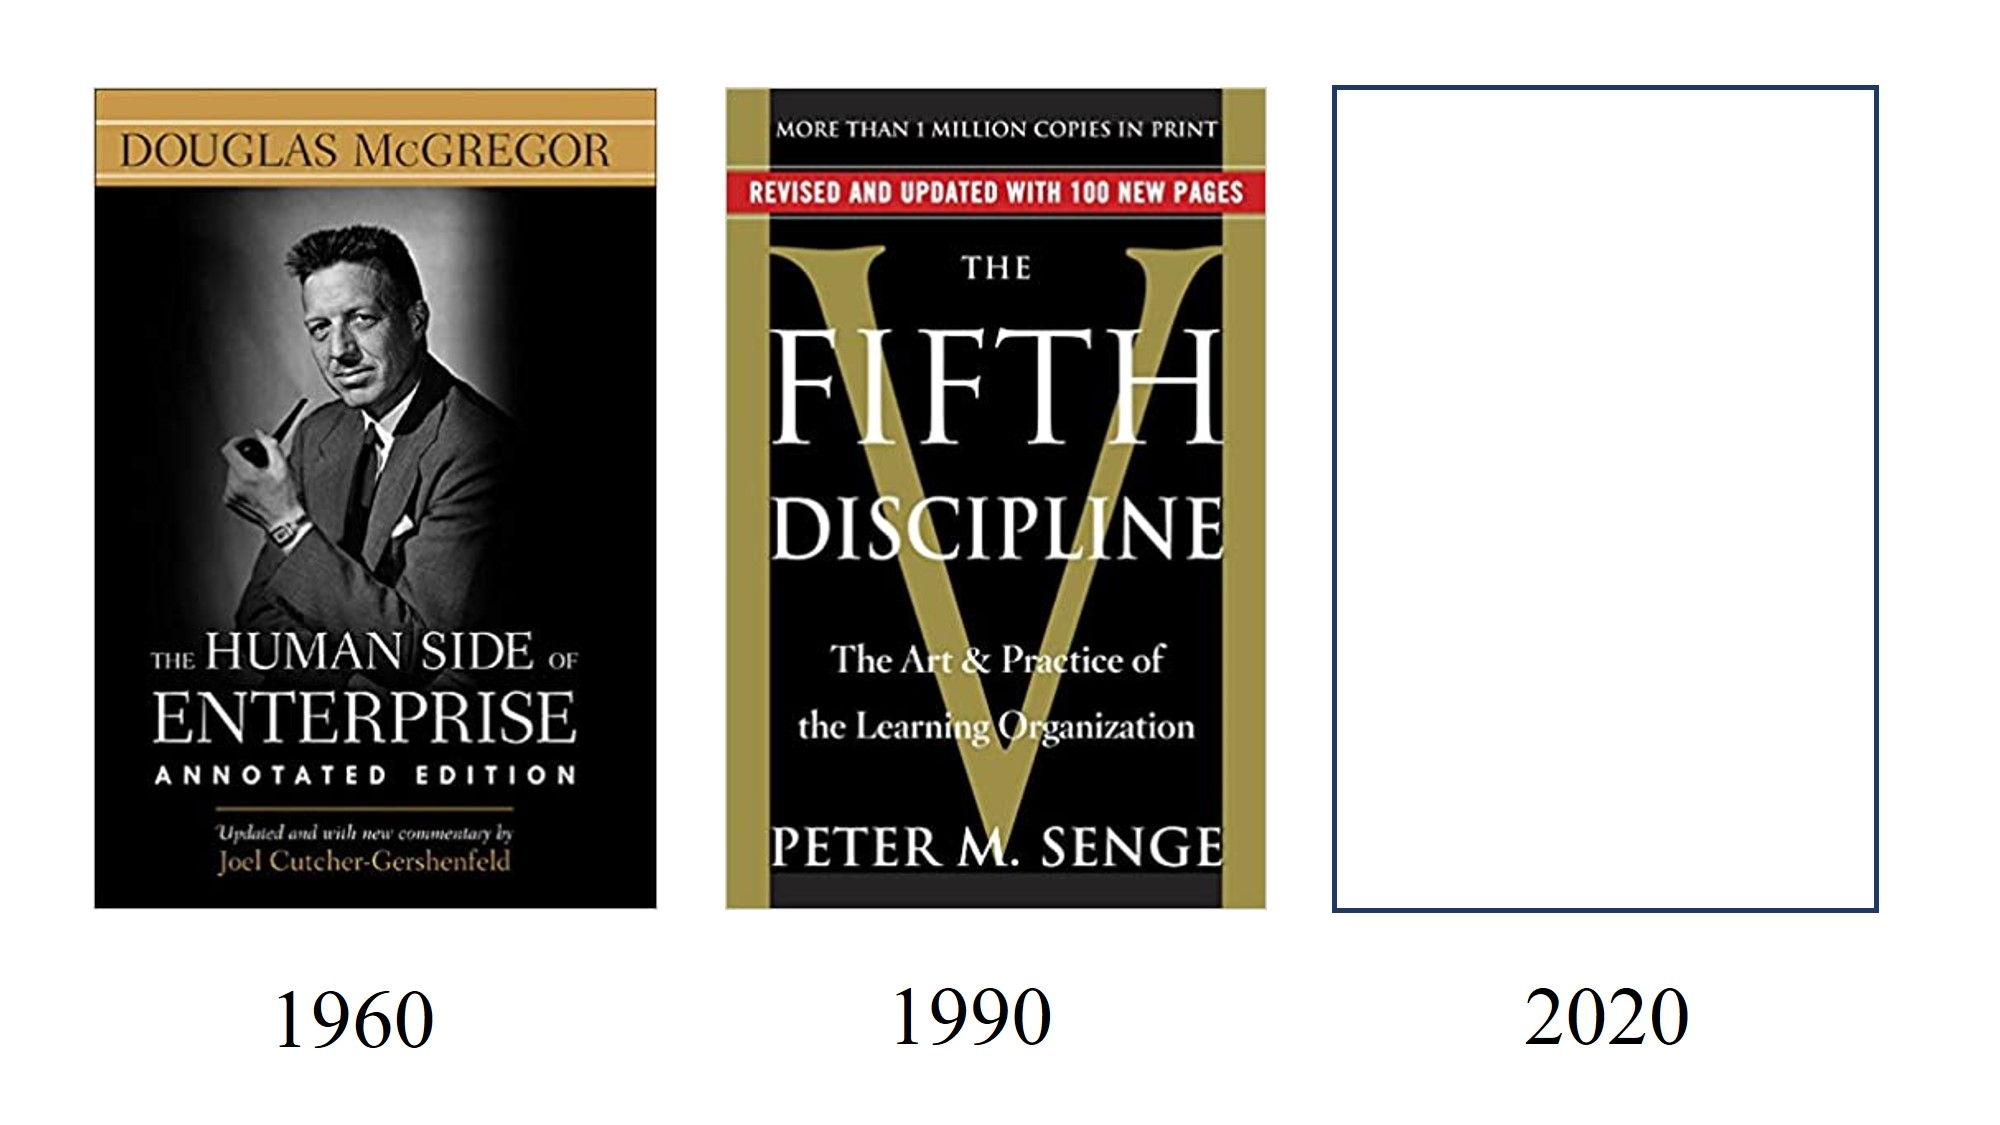 Human side of enterprise and Fifth discipline